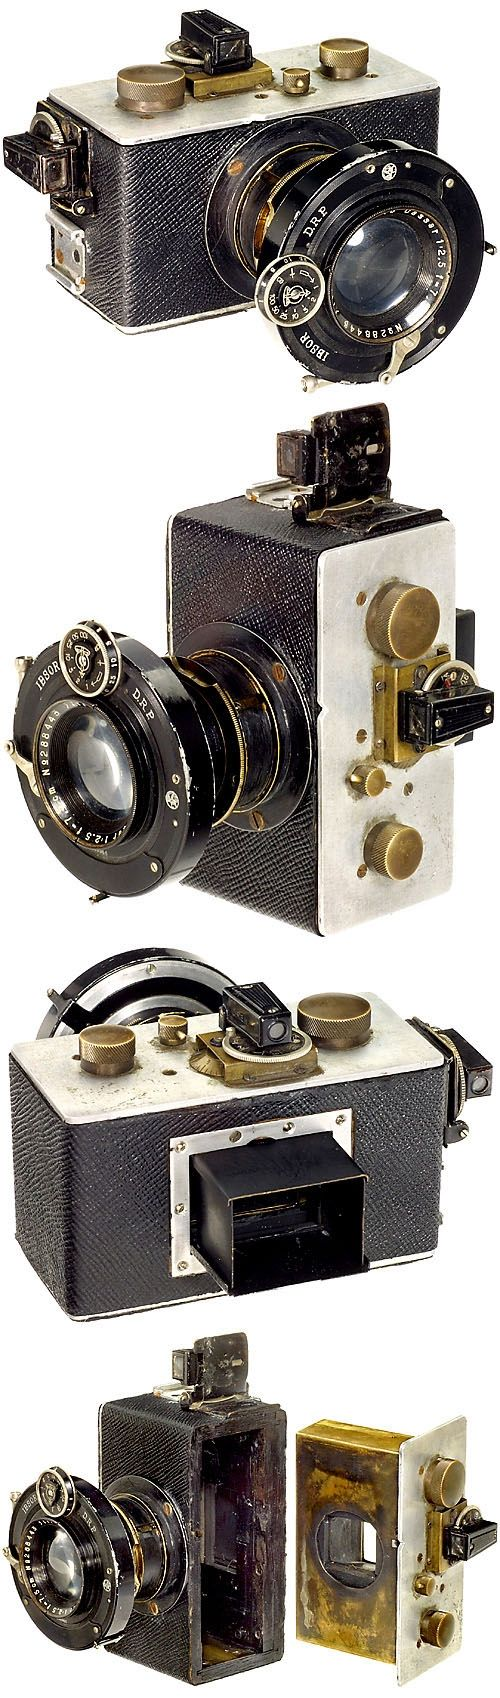 List of Early 35mm Cameras, from 1914 to 1932  pag.1